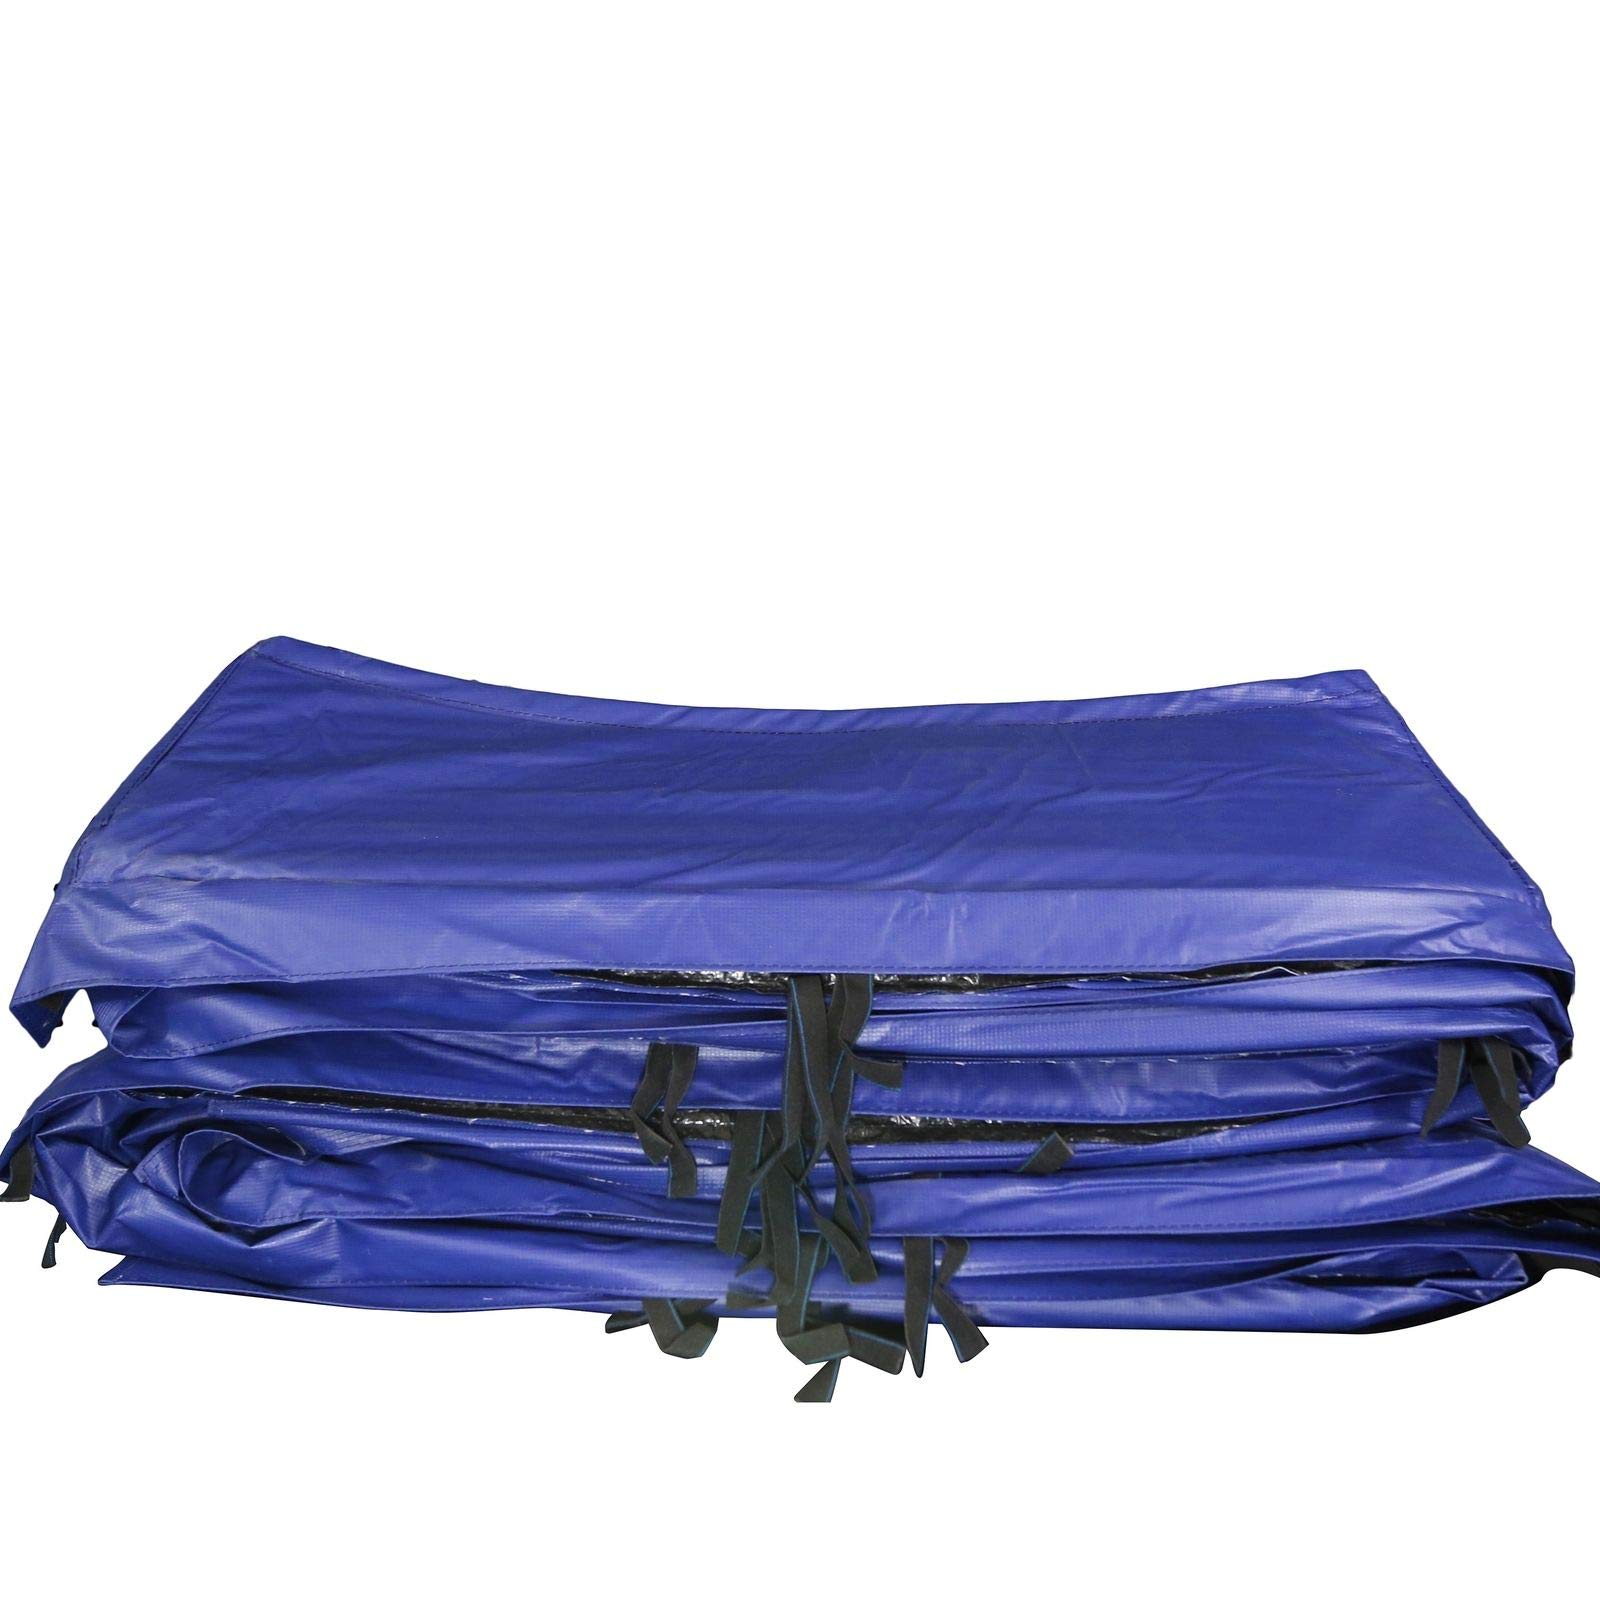 Trampolines Replacement Parts 15 ft Skywalker Accesories. 15' Round Spring Pad Blue Vinyl-Coated for Trampoline. Ultra High UV Protection. Compatibility SWTC15 by Skywalkers Trampolines genuine component (Image #3)